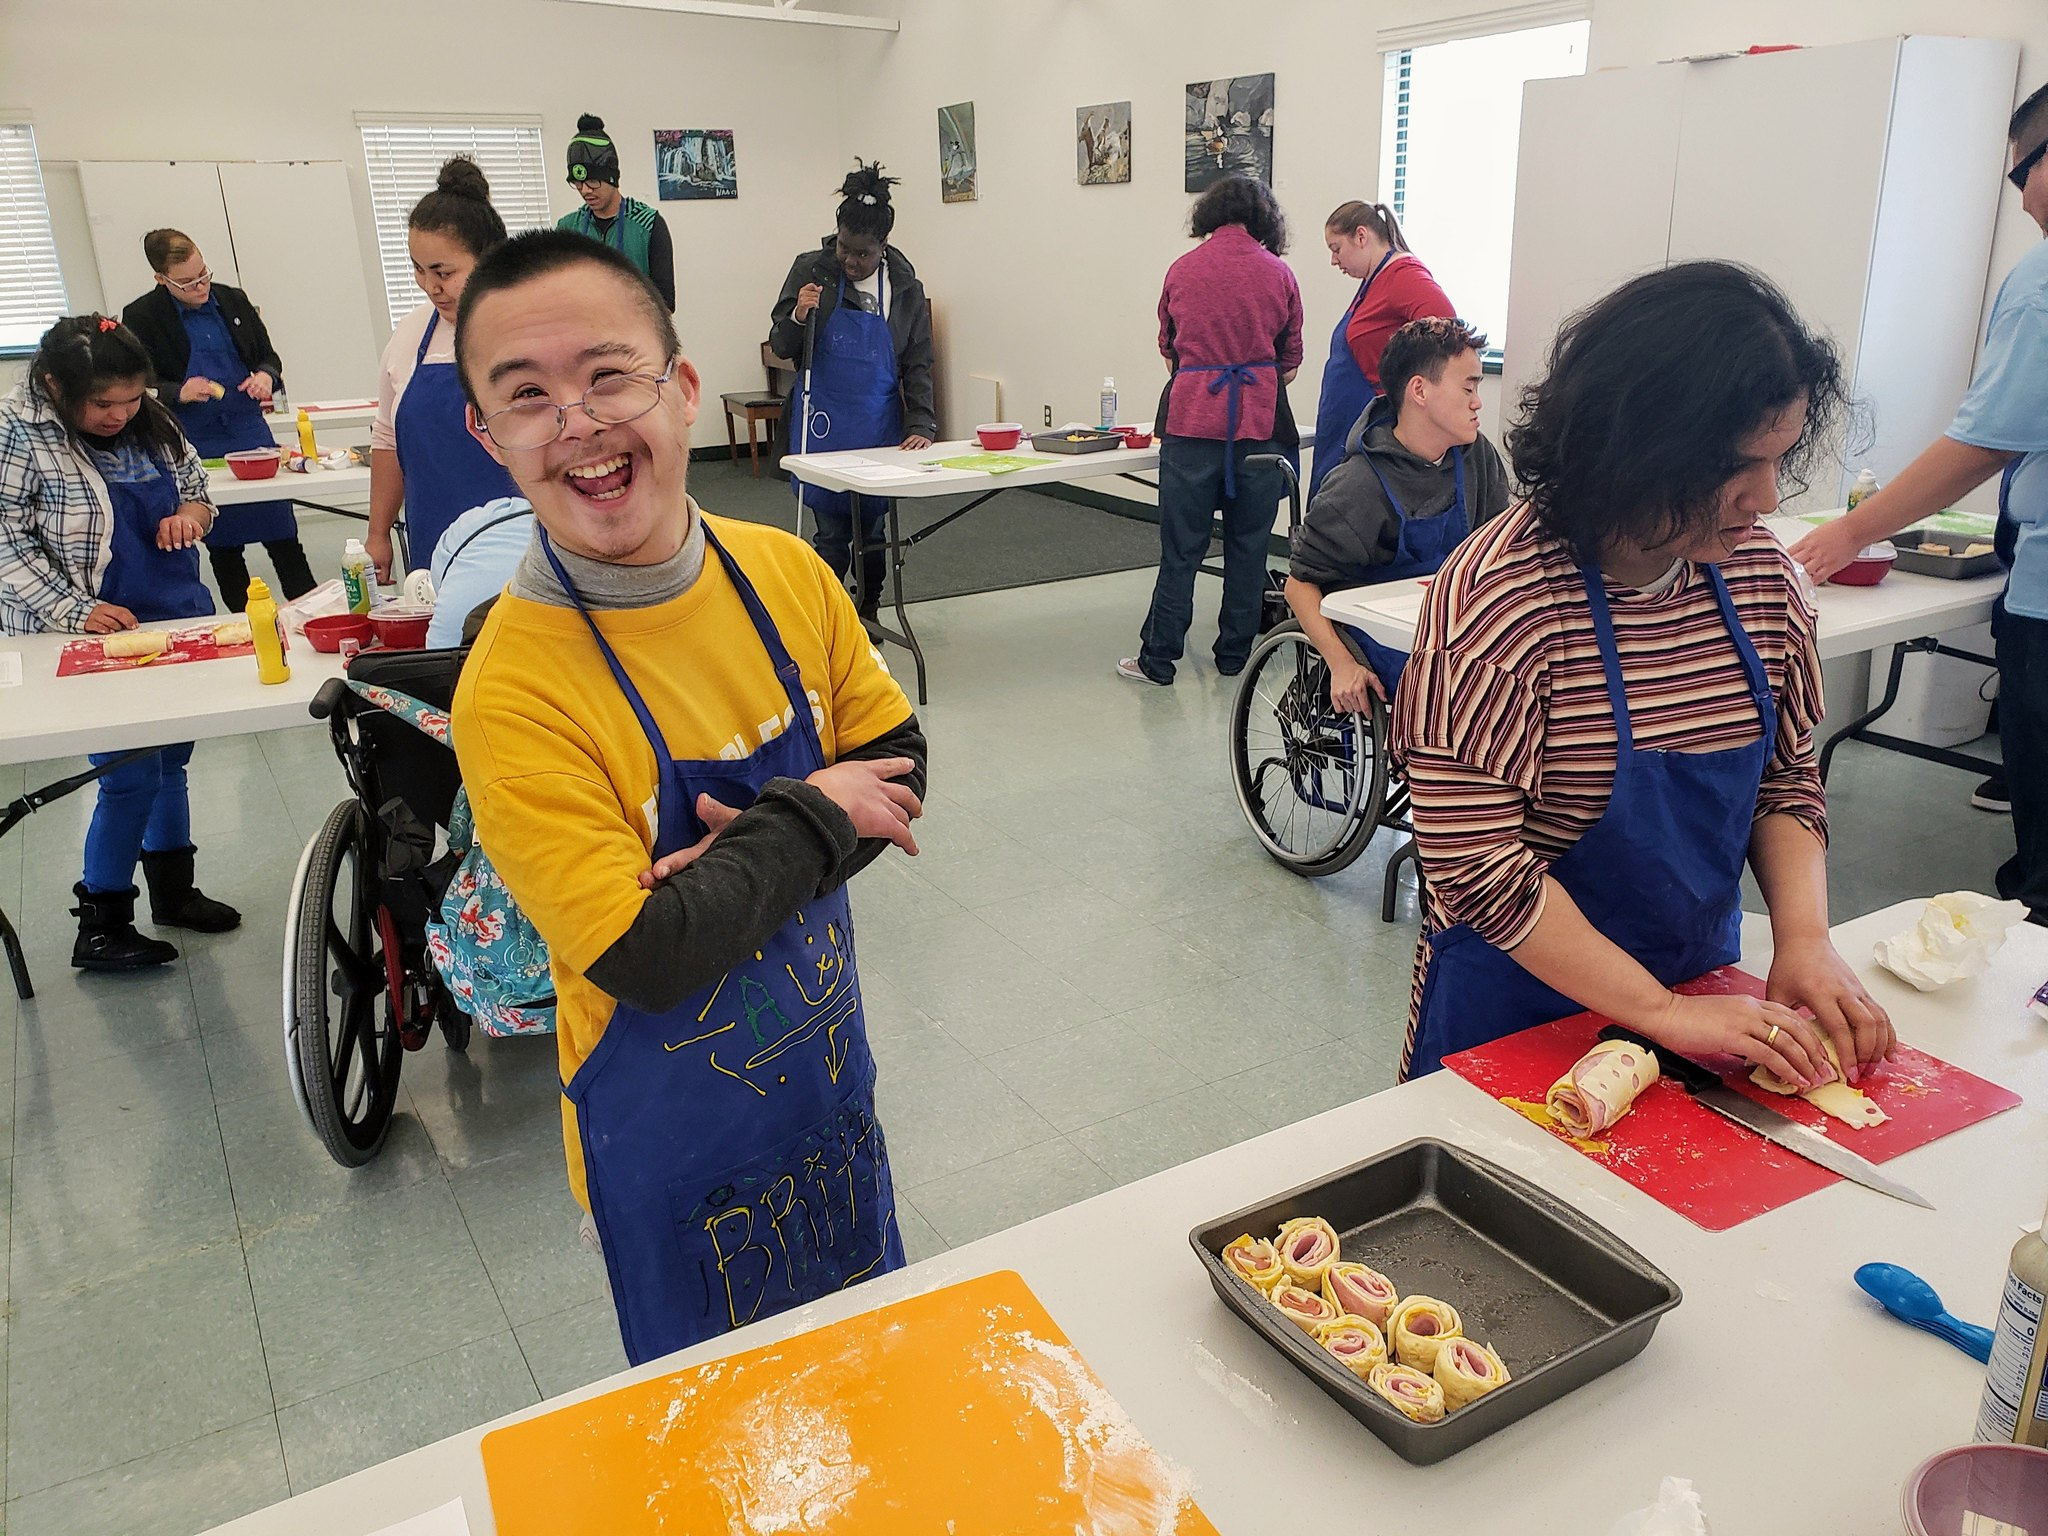 Youth with Down Syndrome smiles as he participates in cooking class